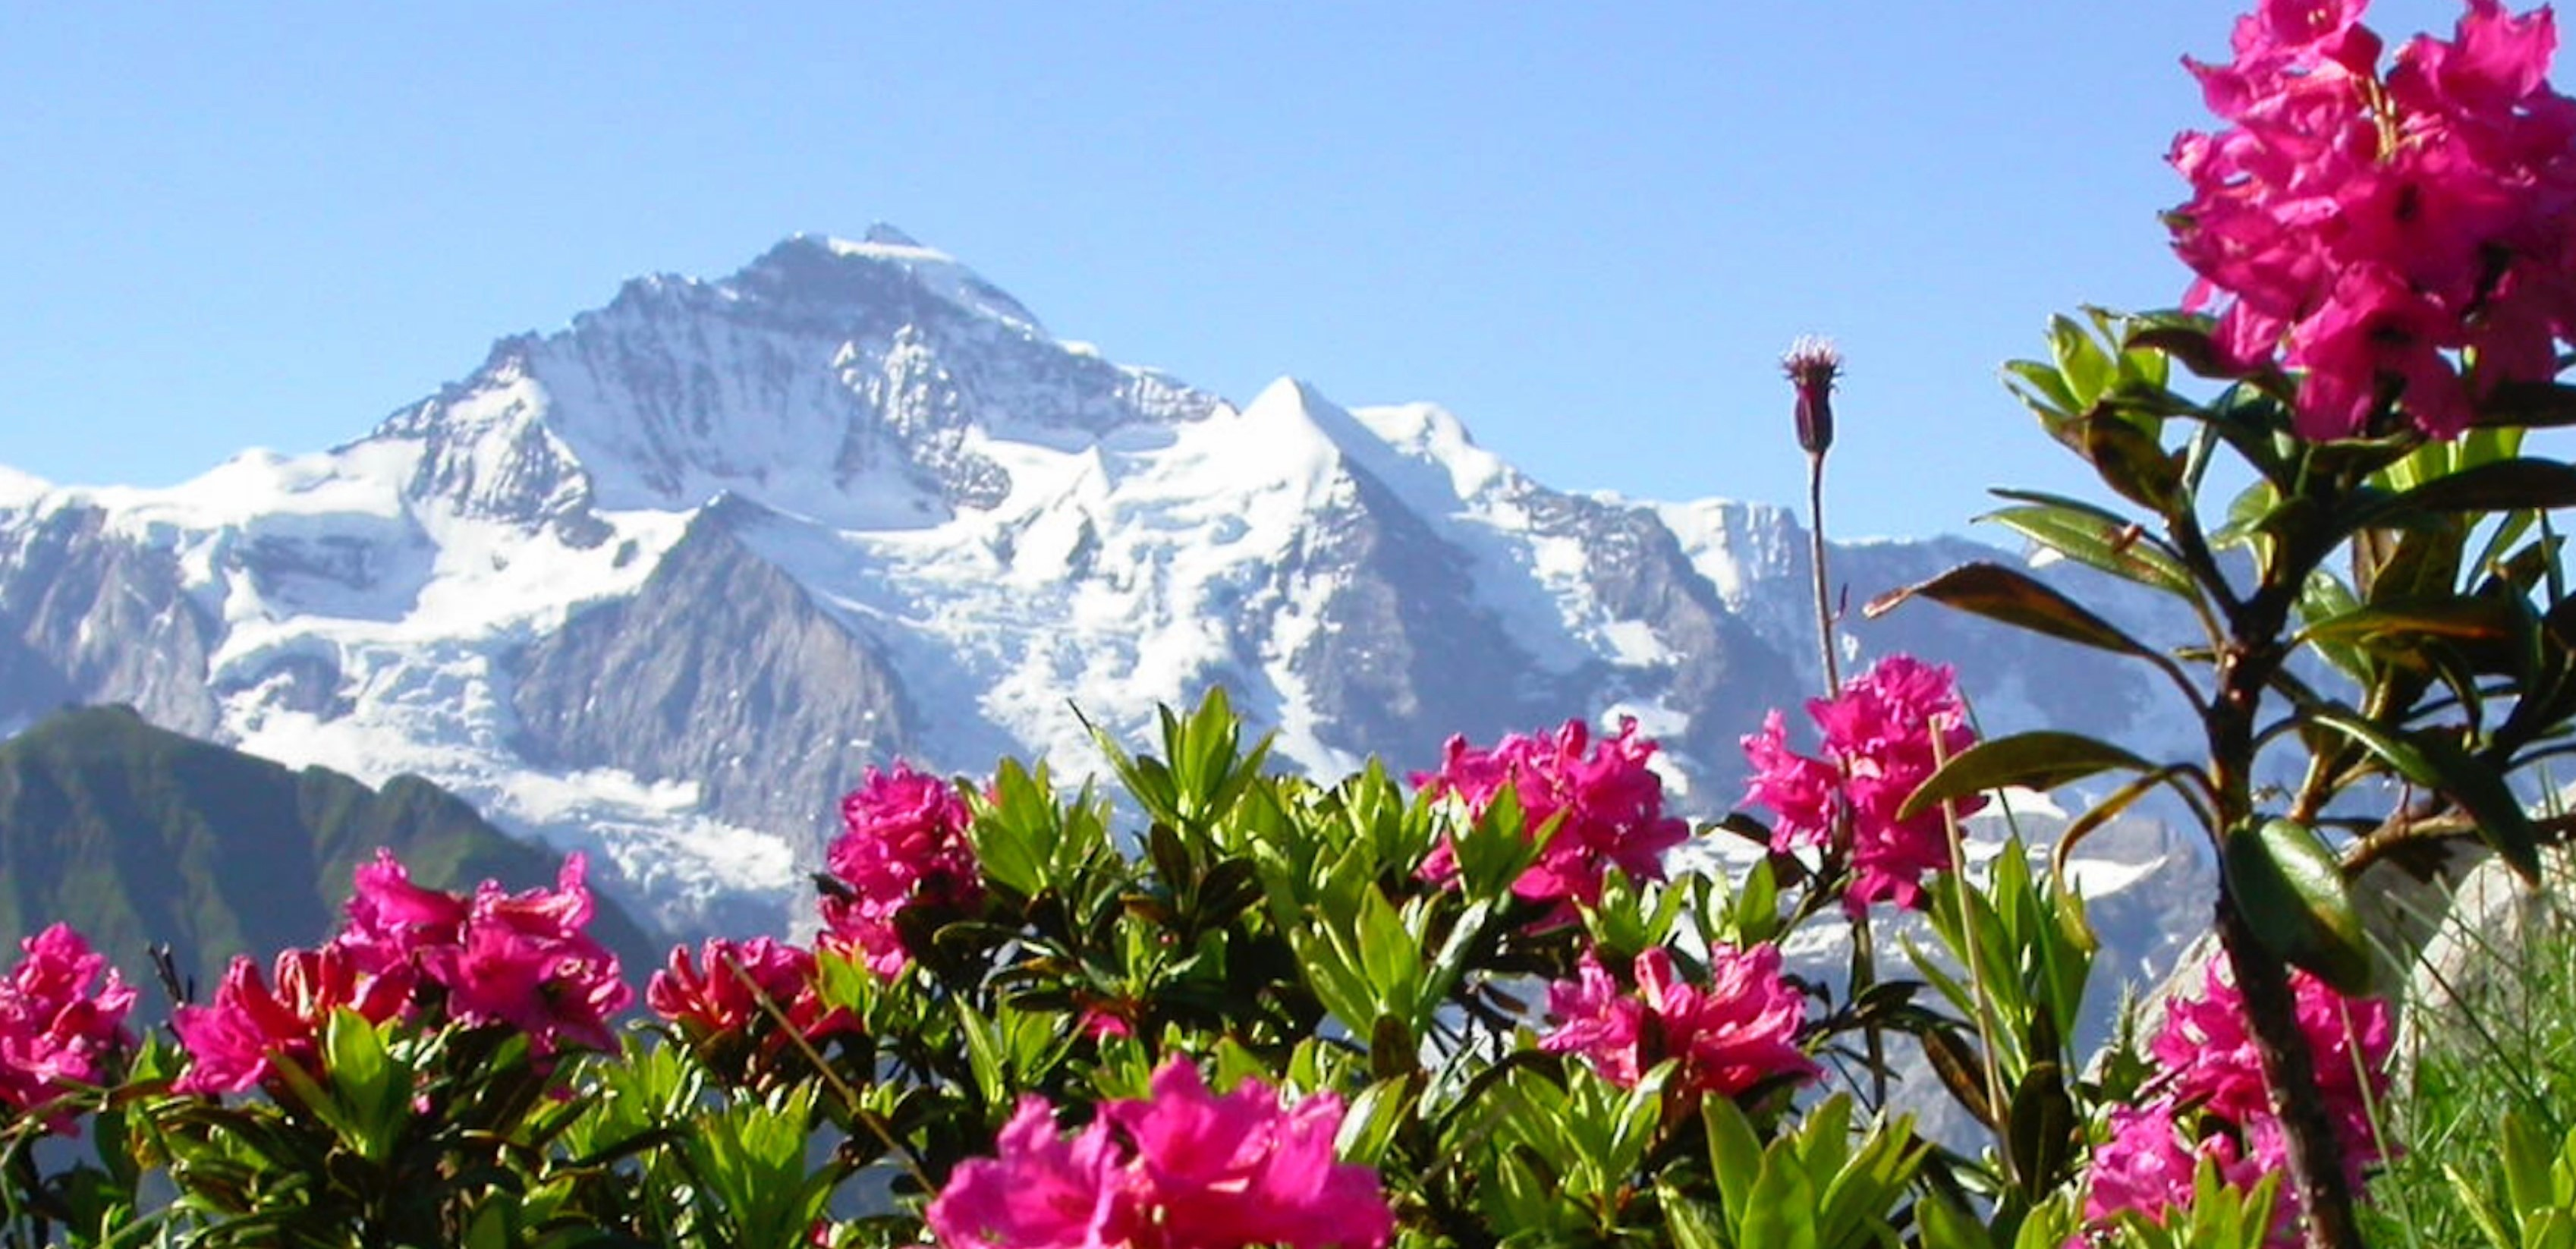 Alpenrose flowers with Swiss mountains in the background